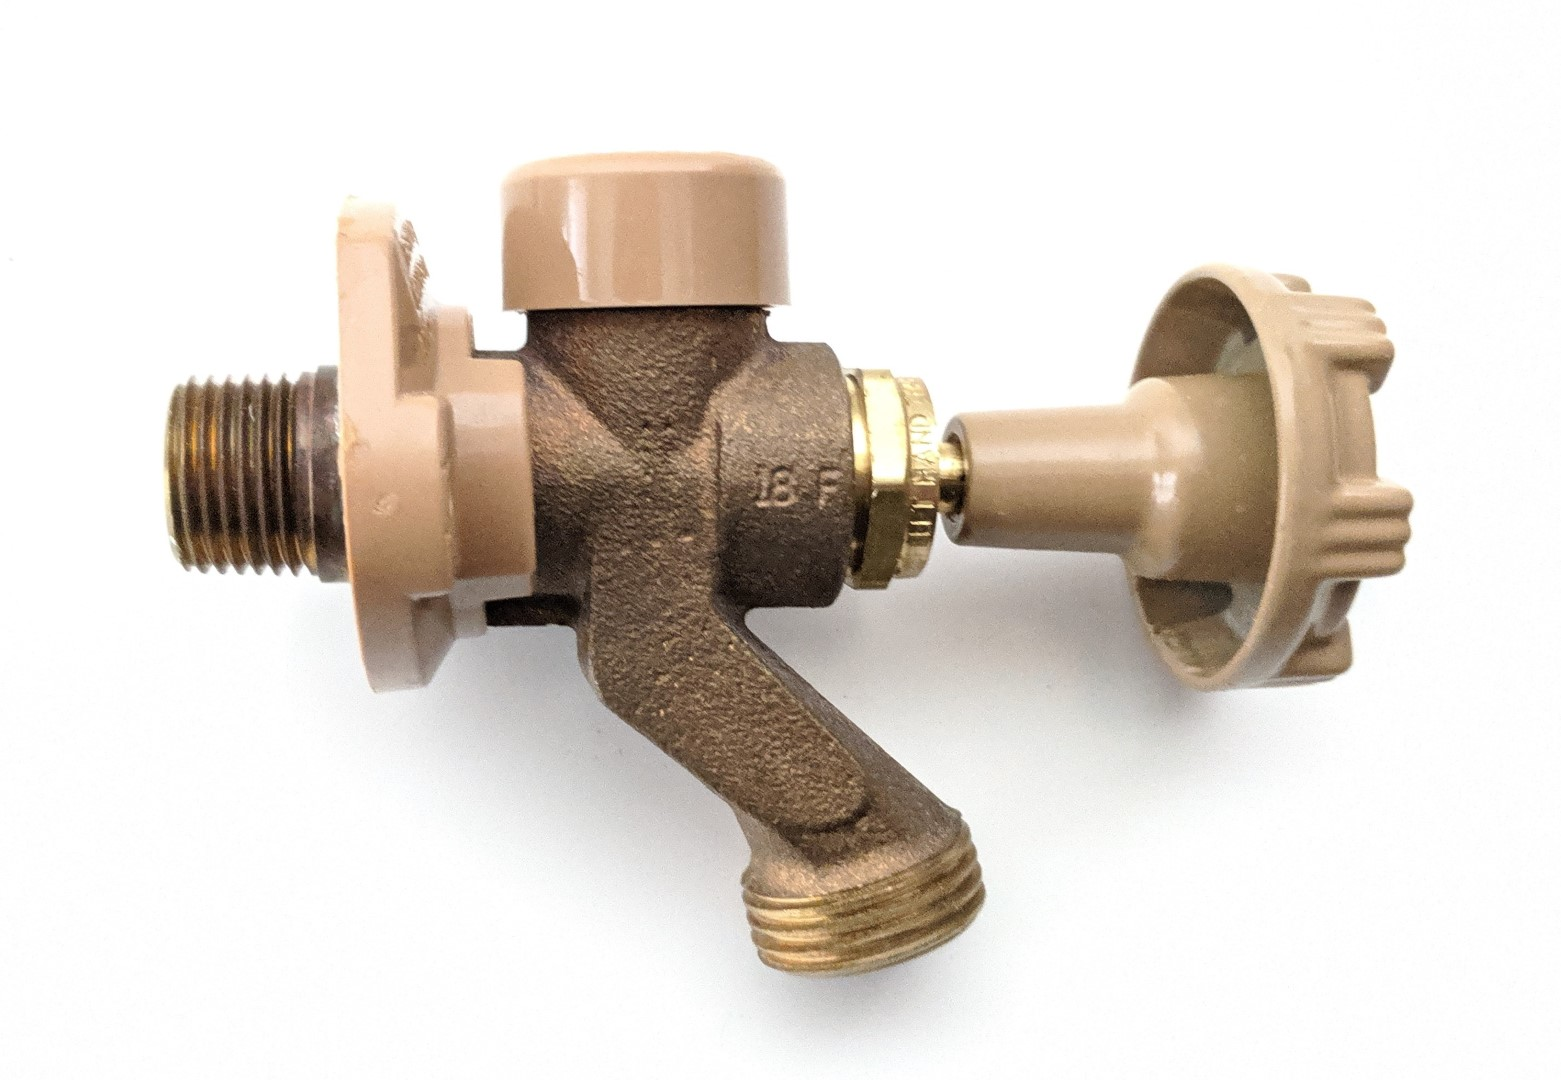 frost free faucets are now required in